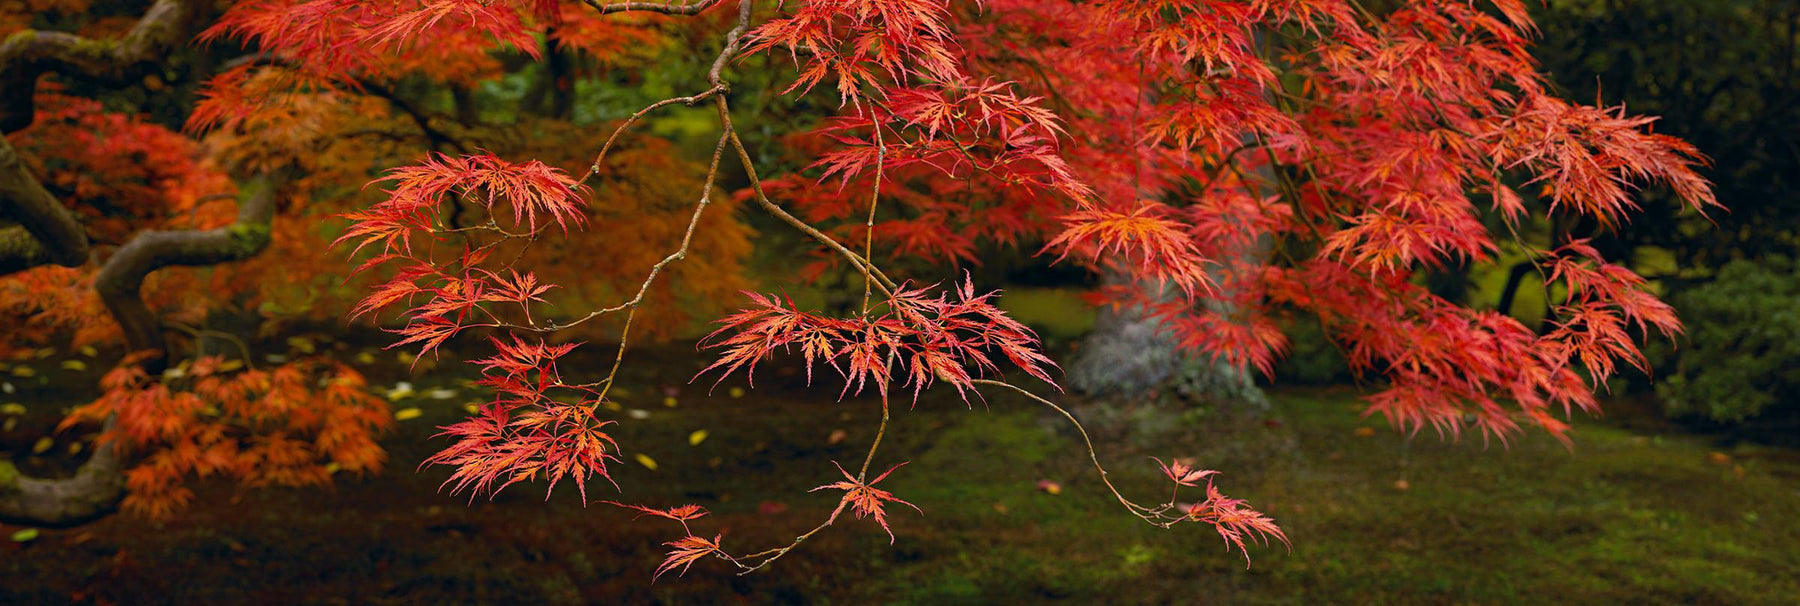 Red leaves and branches of a Japanese Maple tree reaching out with the trunk and ground in the background